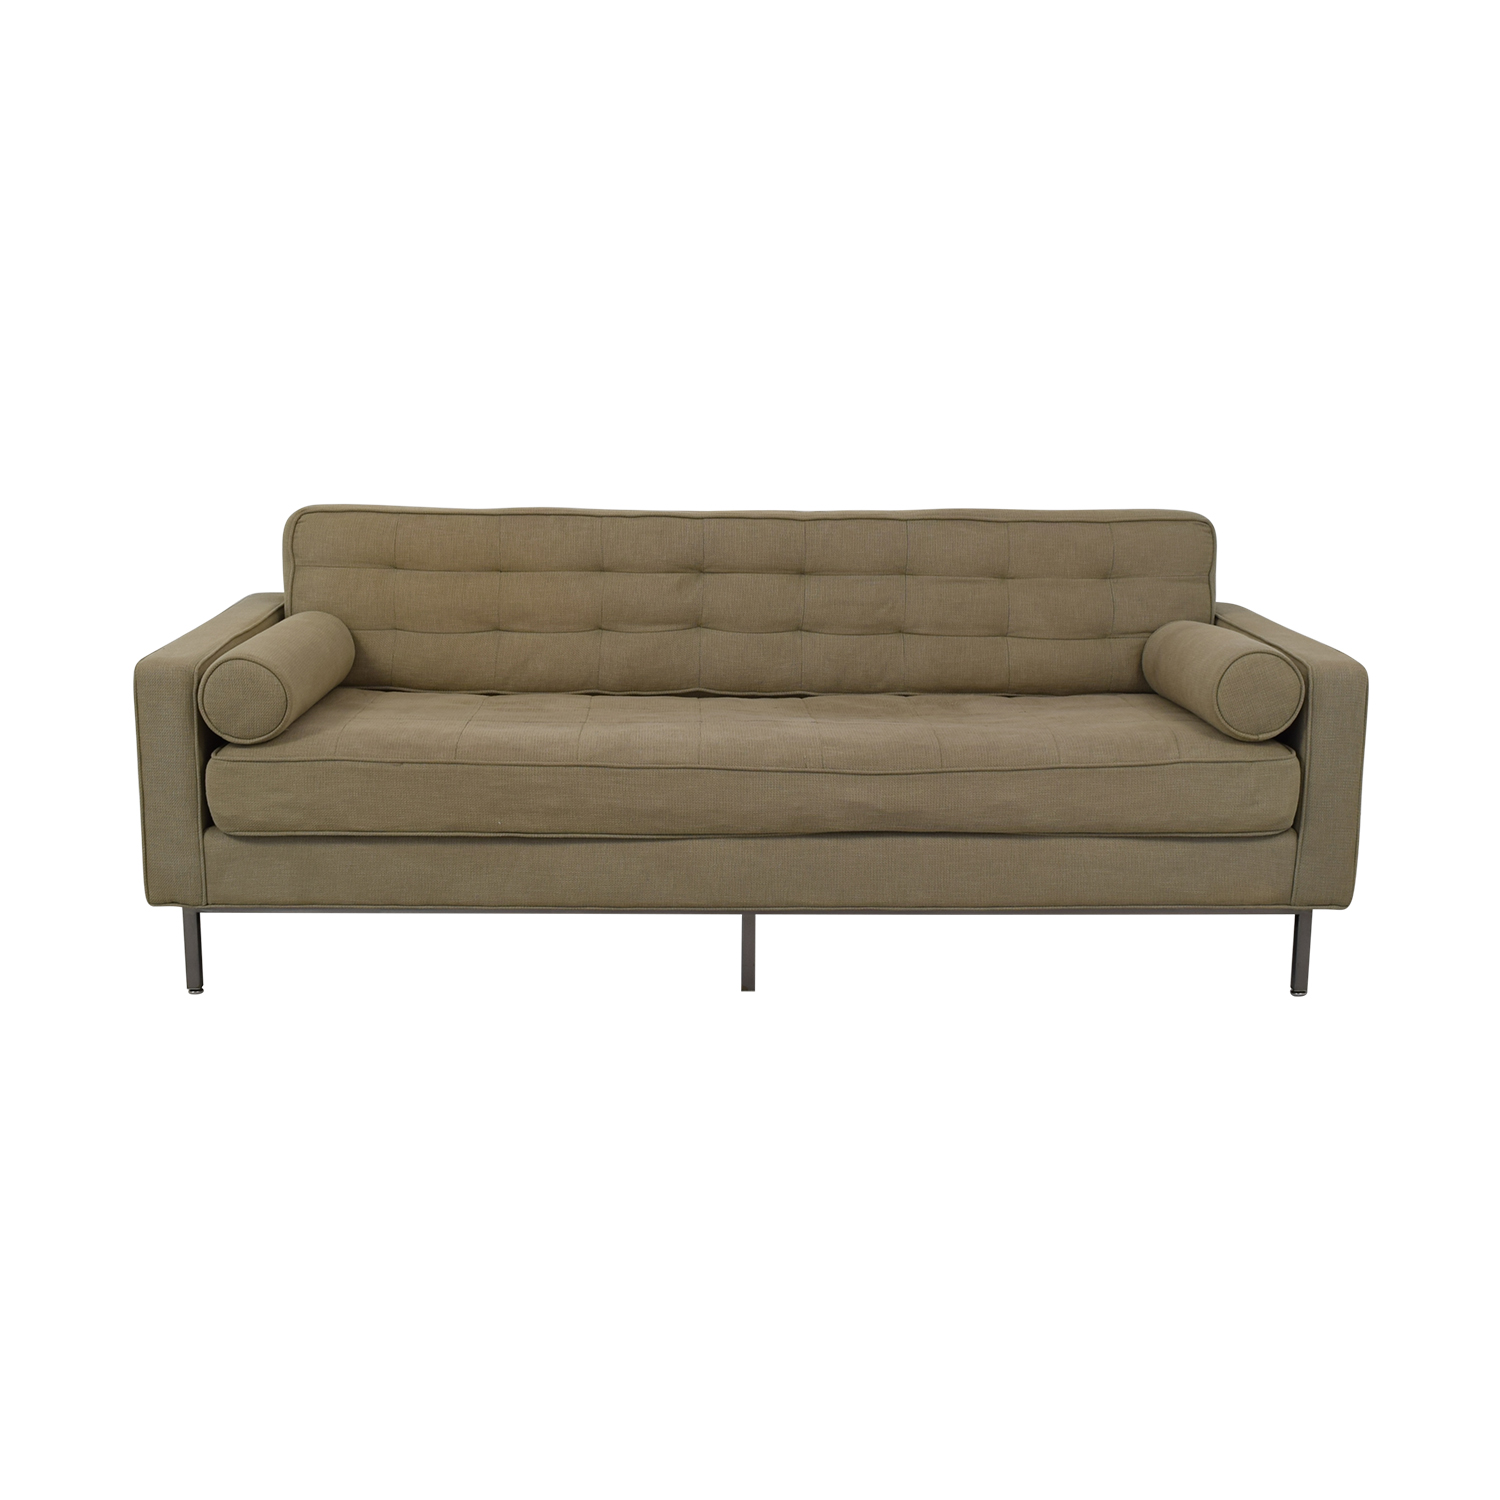 Custom Tufted Tuxedo Sofa on sale